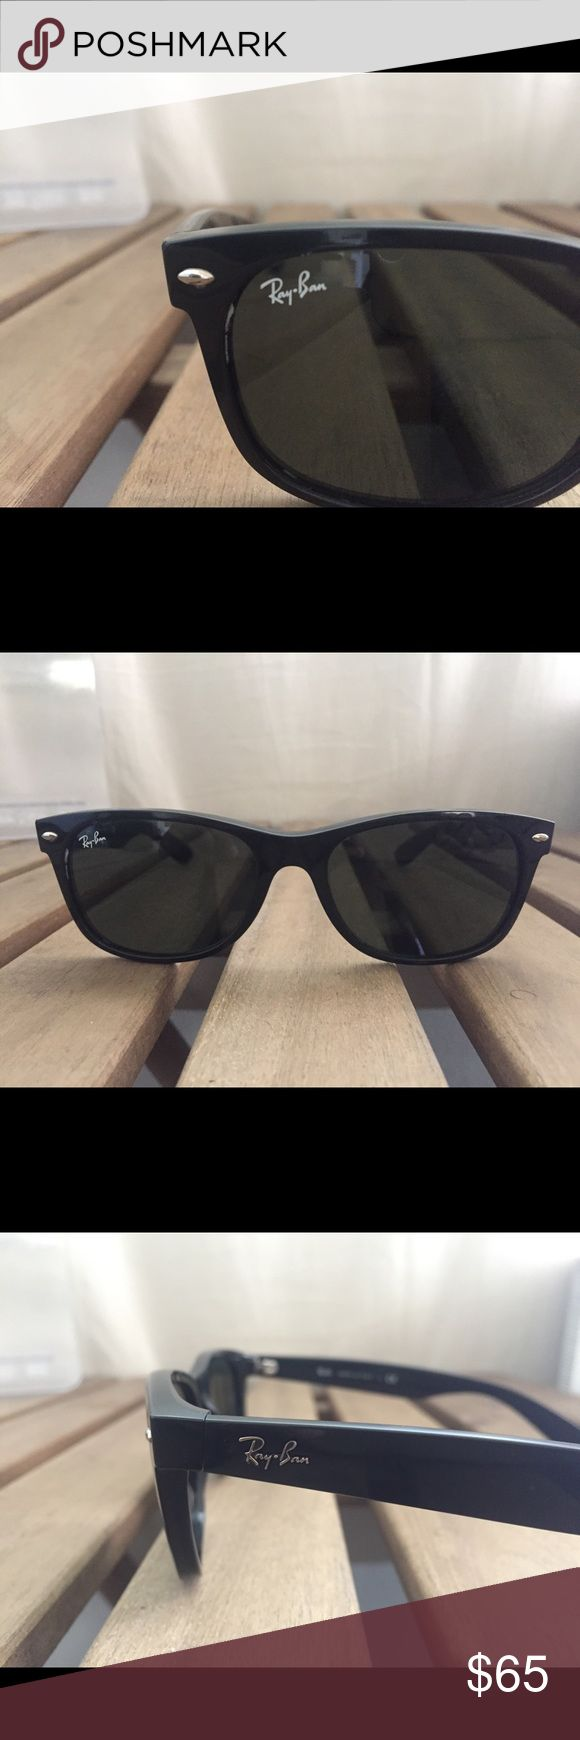 Ray Ban Wayfarer 2132 Authentic RB 2132 no scratches no case polarized. Retails for $140 Ray-Ban Accessories Sunglasses